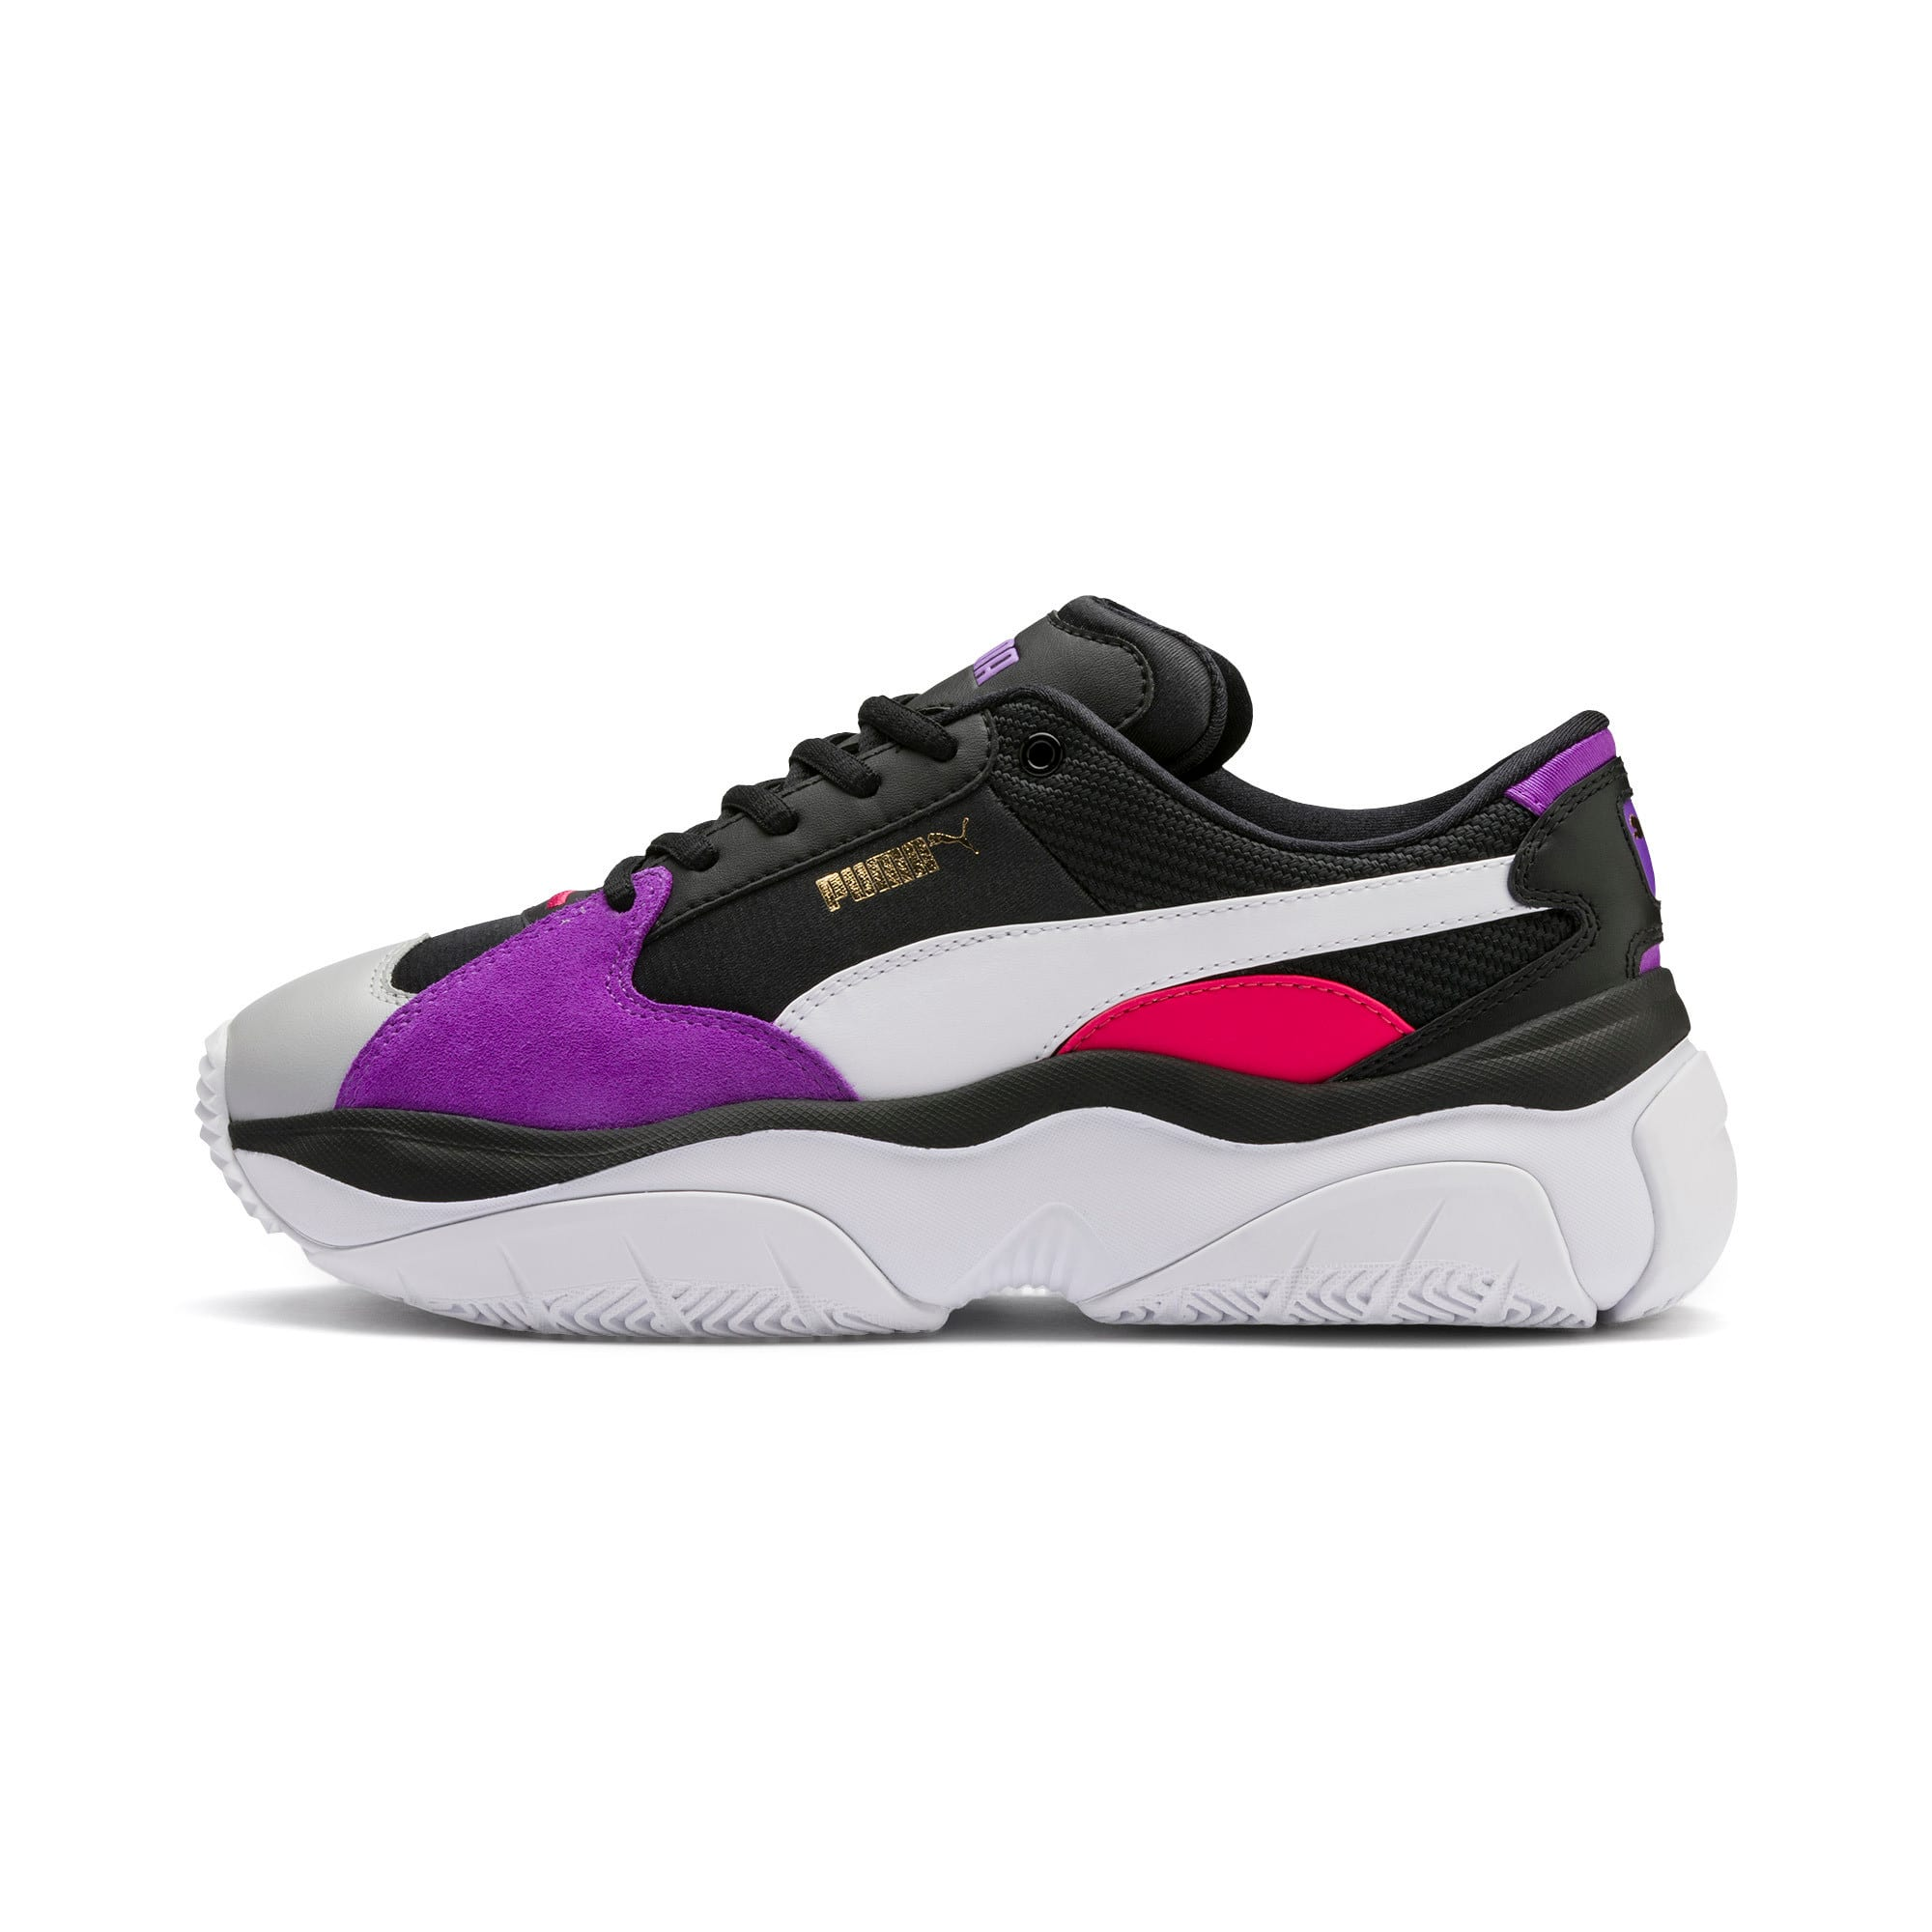 Thumbnail 1 of STORM.Y Damen Sneaker, Puma Black-Gray Violet, medium